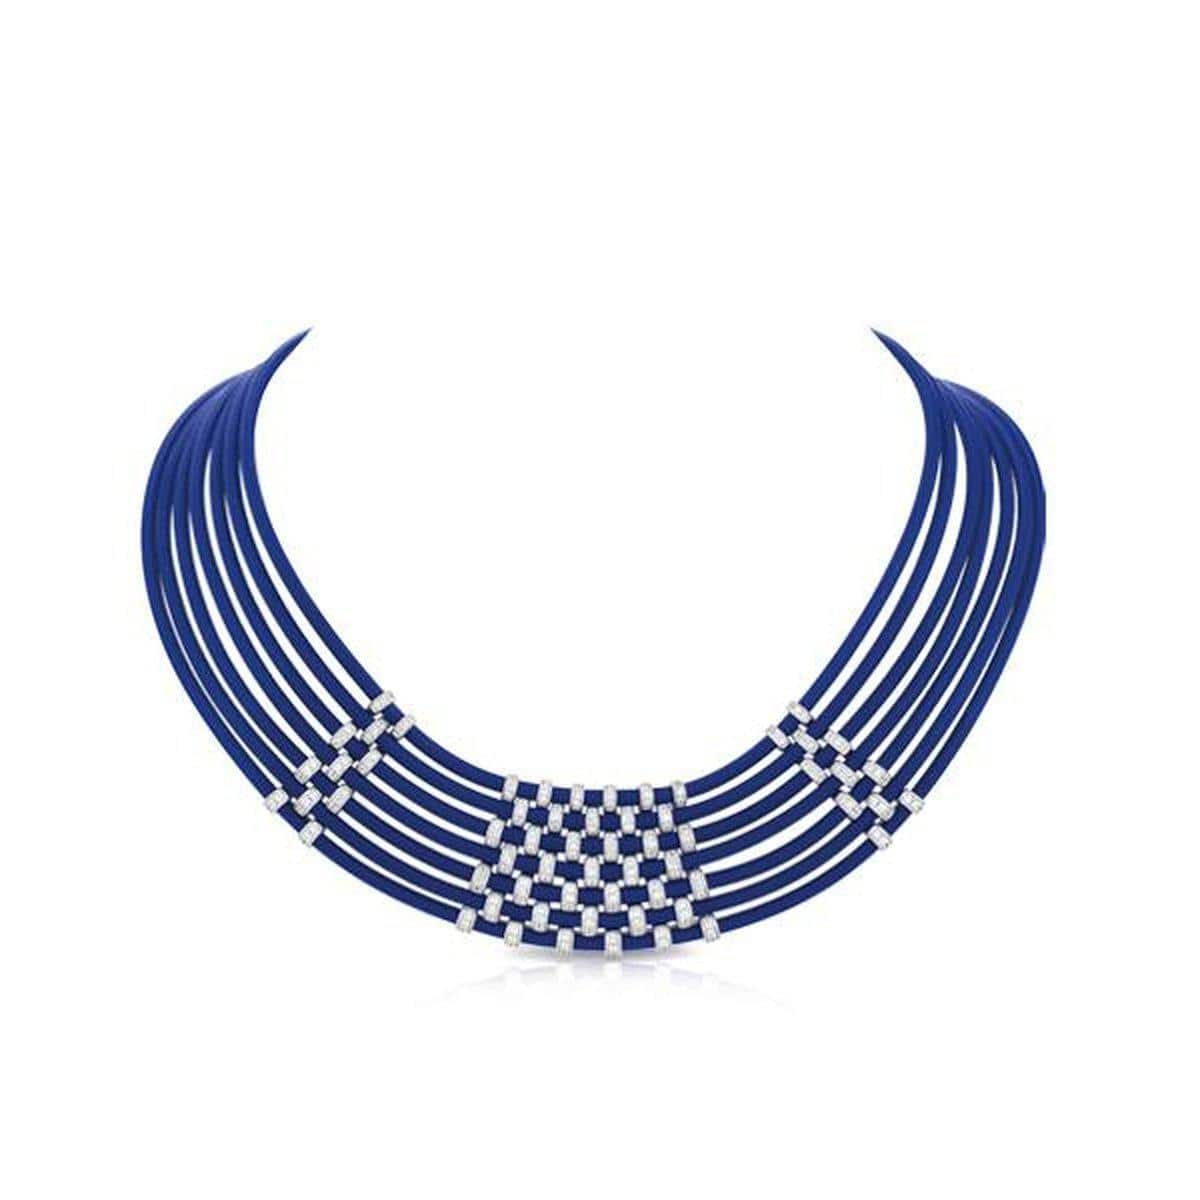 Isis Blue Necklace-Belle Etoile-Renee Taylor Gallery